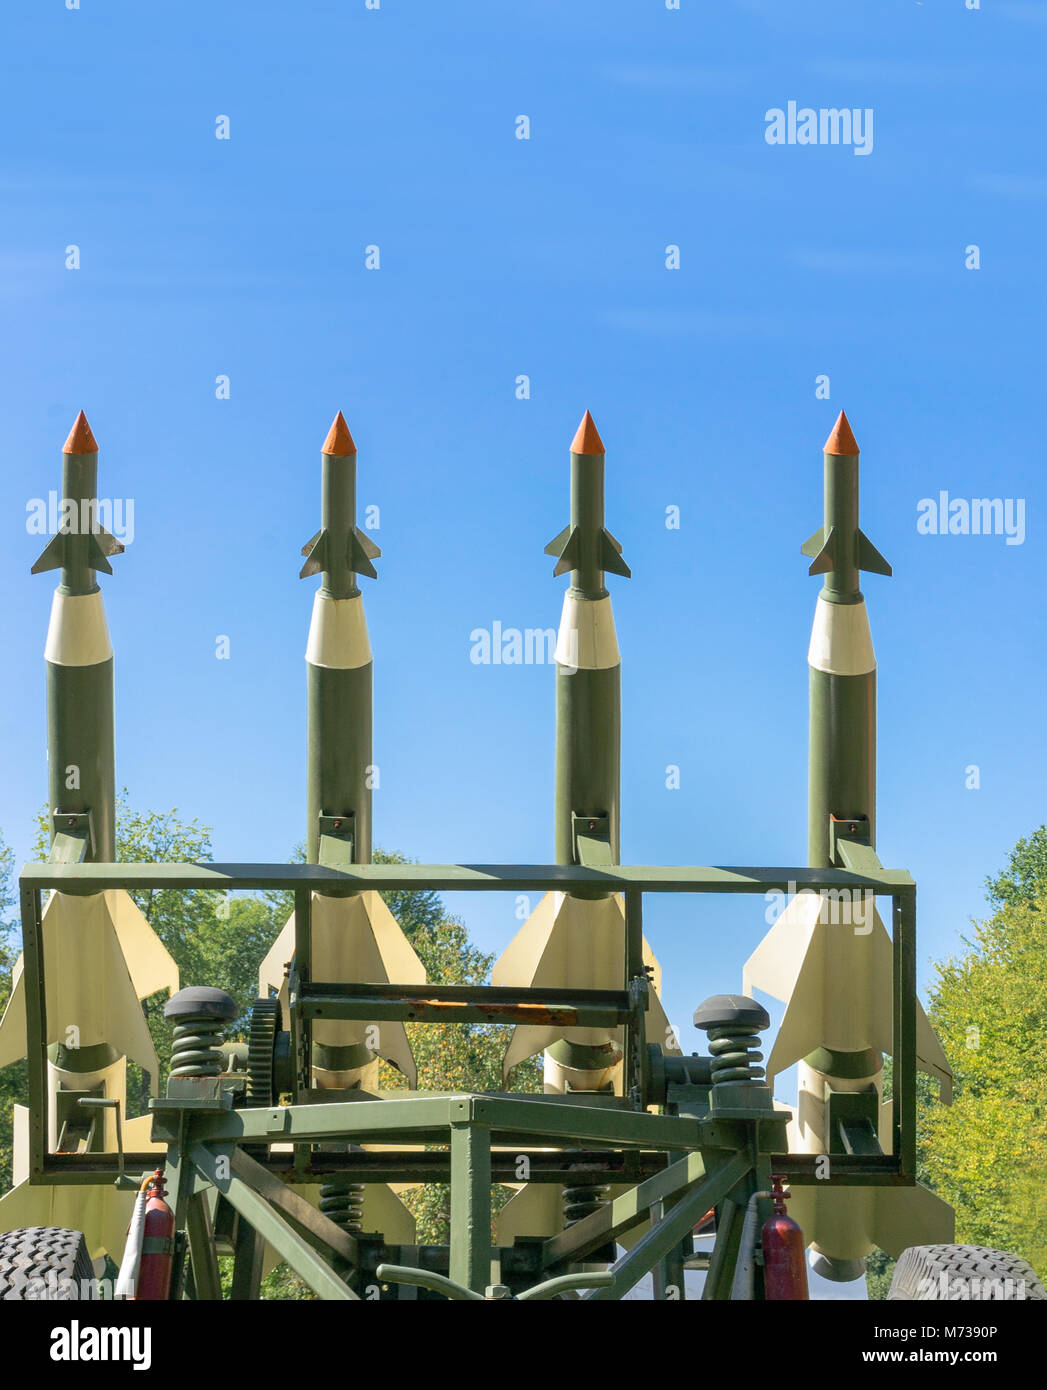 Nuclear Missiles With Warhead Aimed at Gloomy Sky. Balistic Rockets War Backgound. - Stock Image